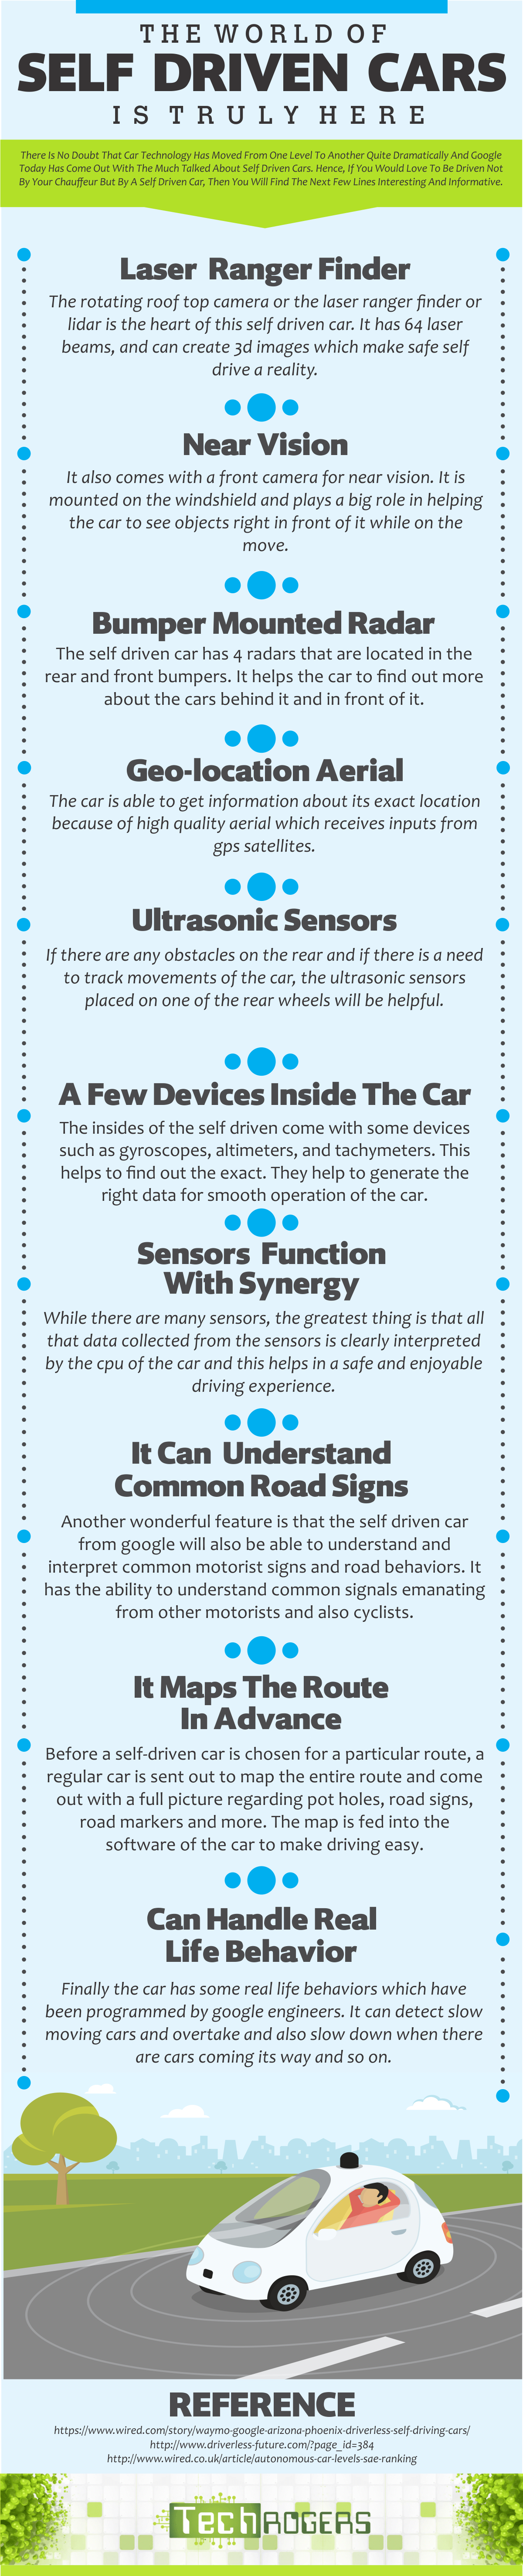 The World Of Self Driven Cars